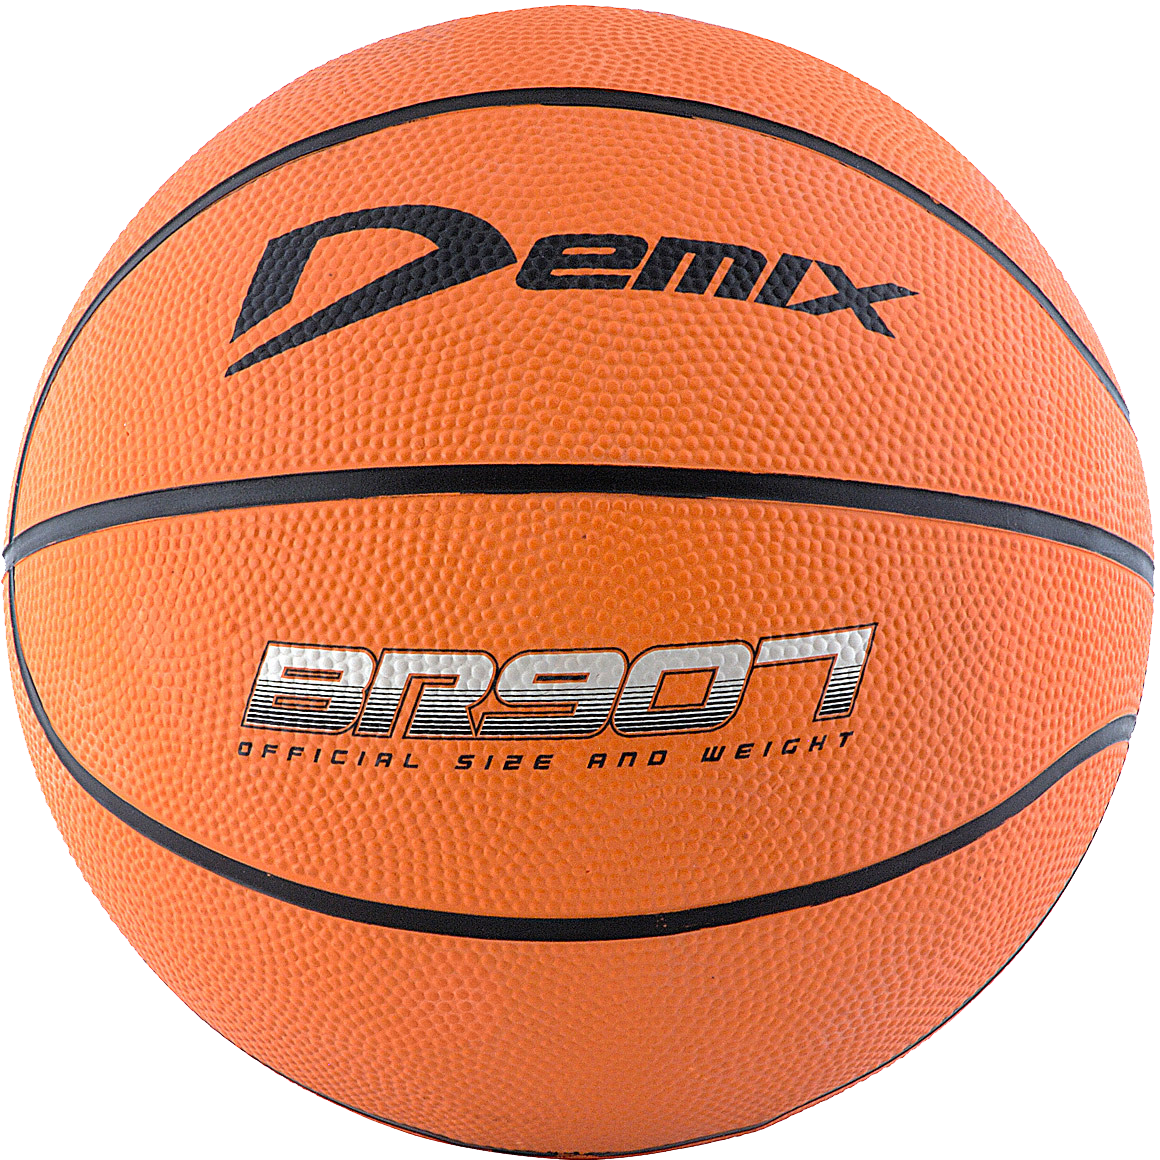 Best Free Basketball Png Image image #26245